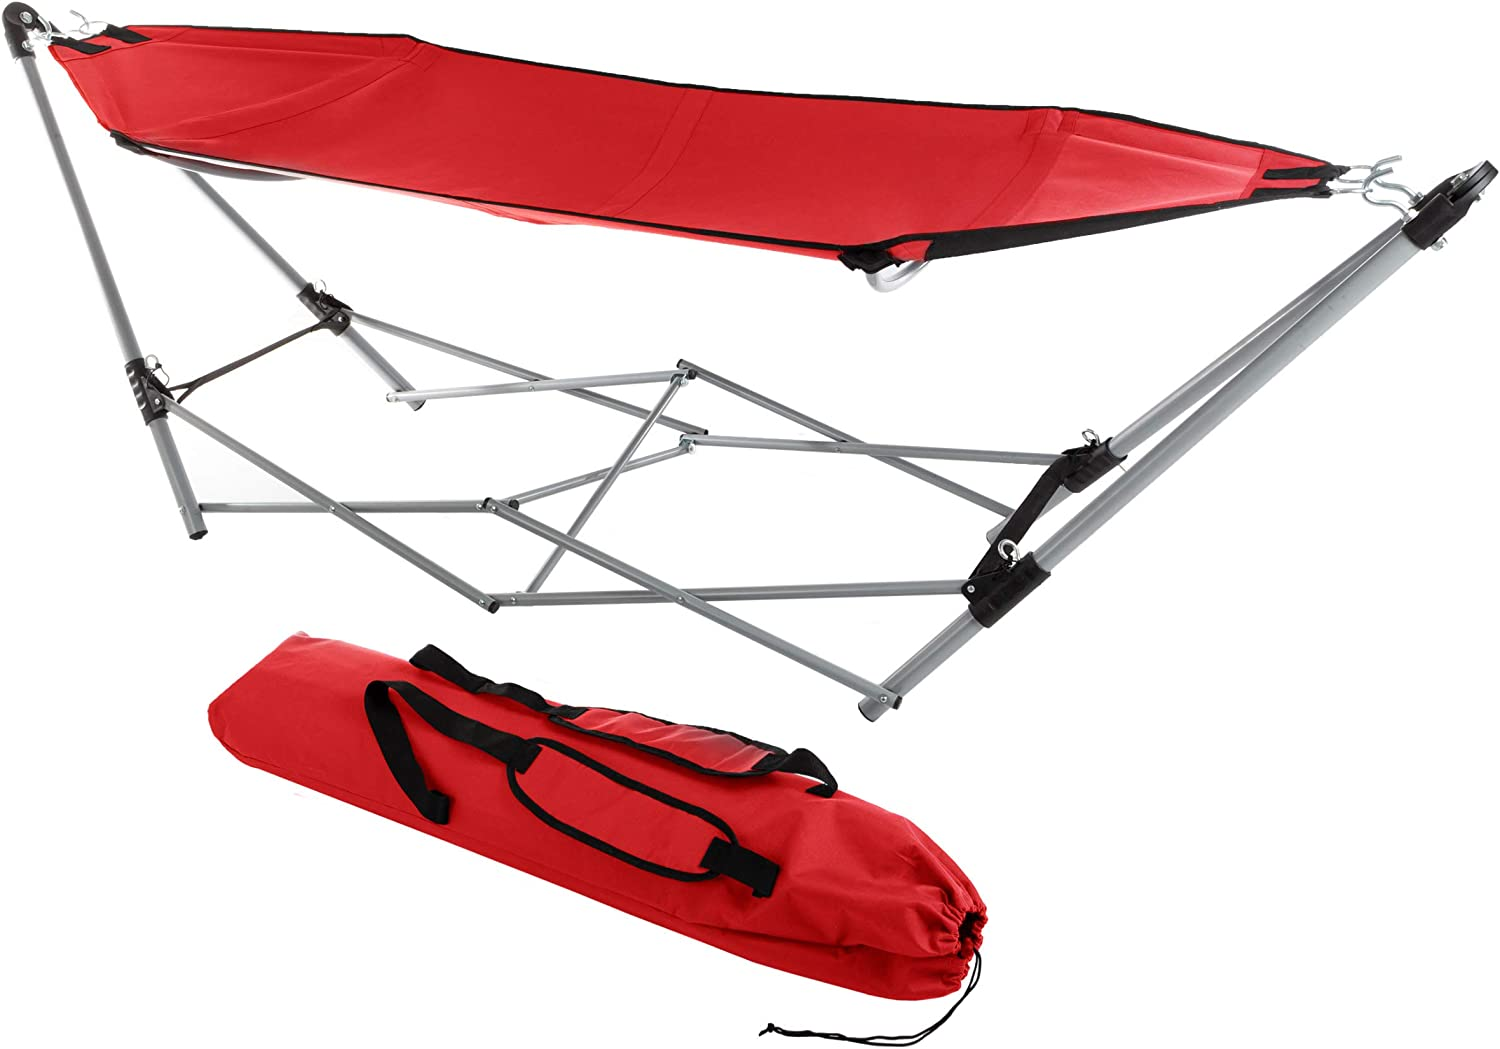 Lavish Home 80-OUTHAM-RED Portable Hammock Stand Japan Cheap SALE Start Maker New with